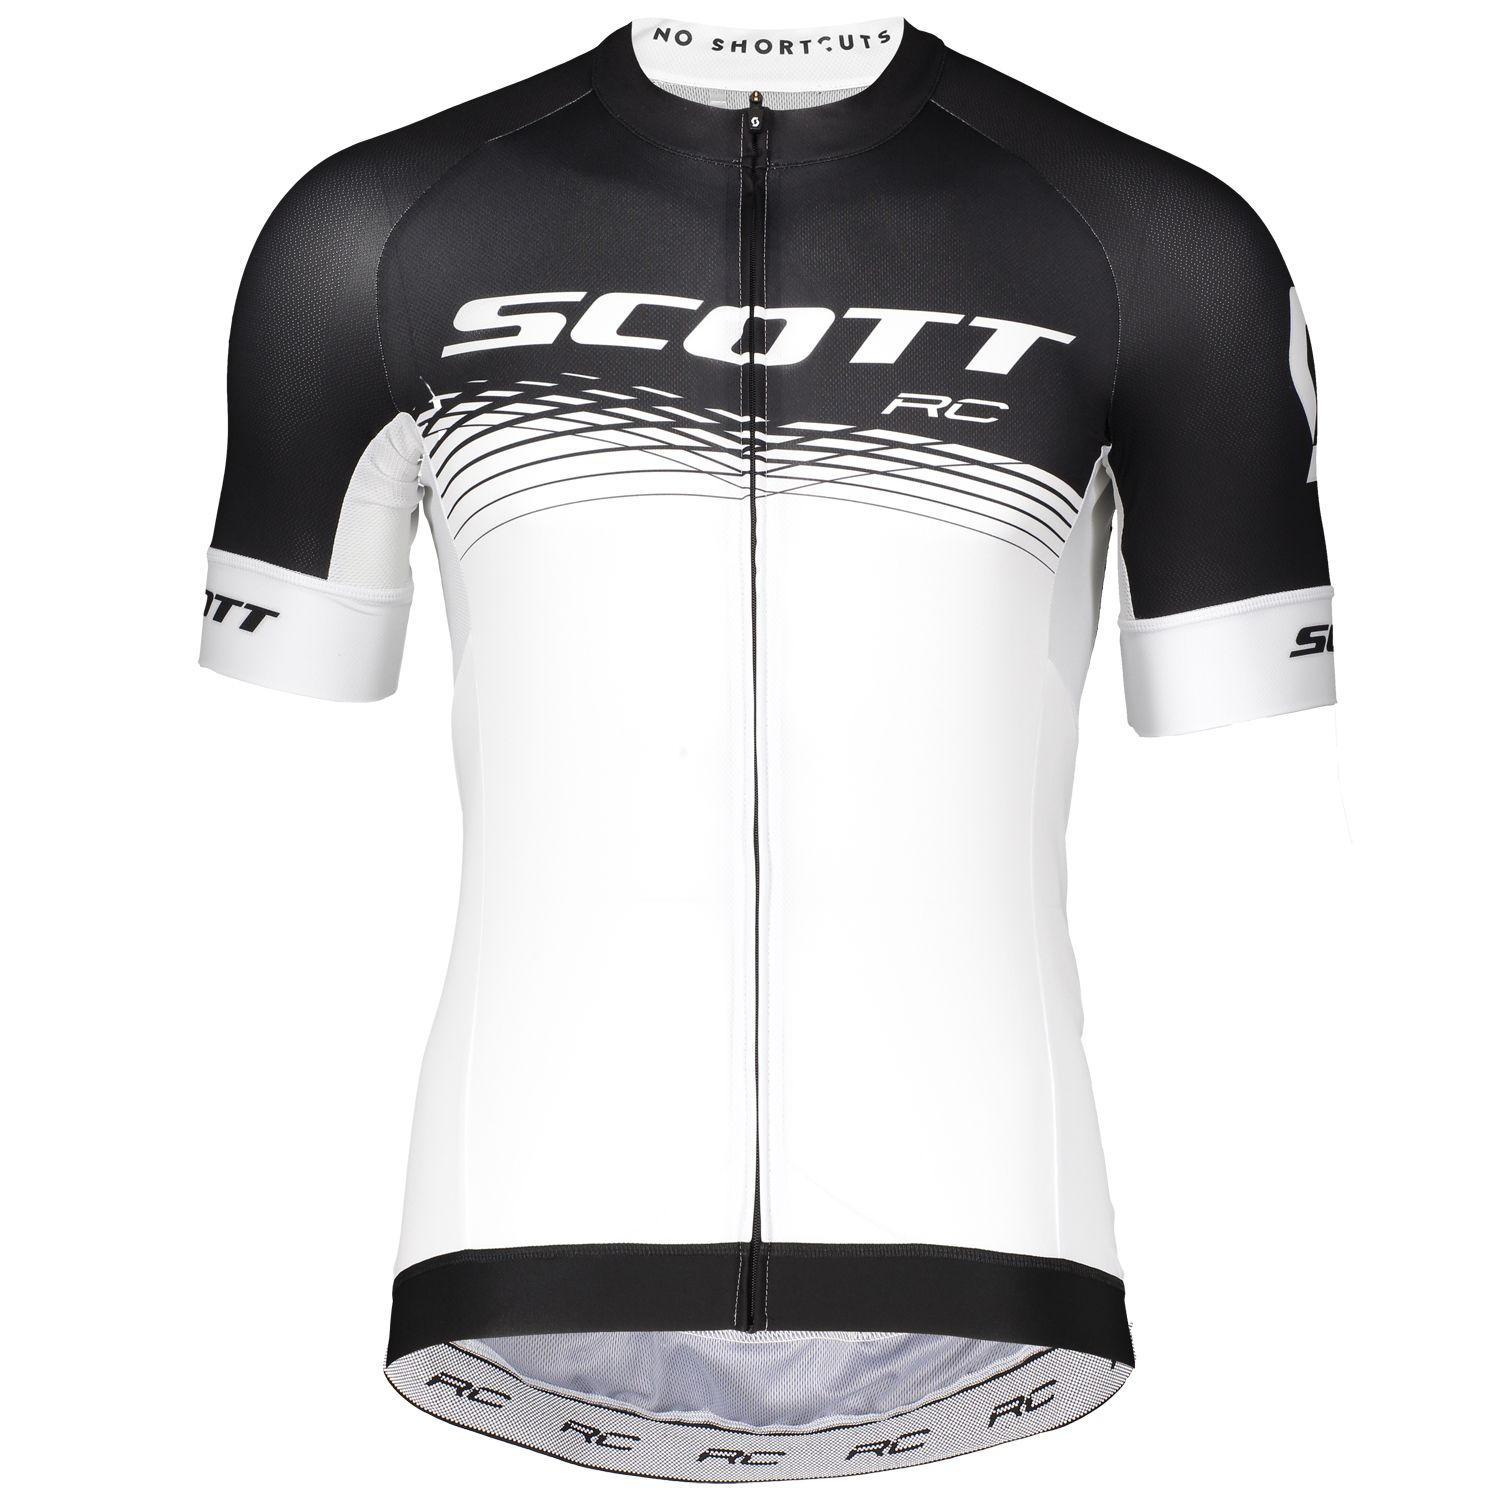 5213a9124 ... cycling jersey black white (270447). Previous